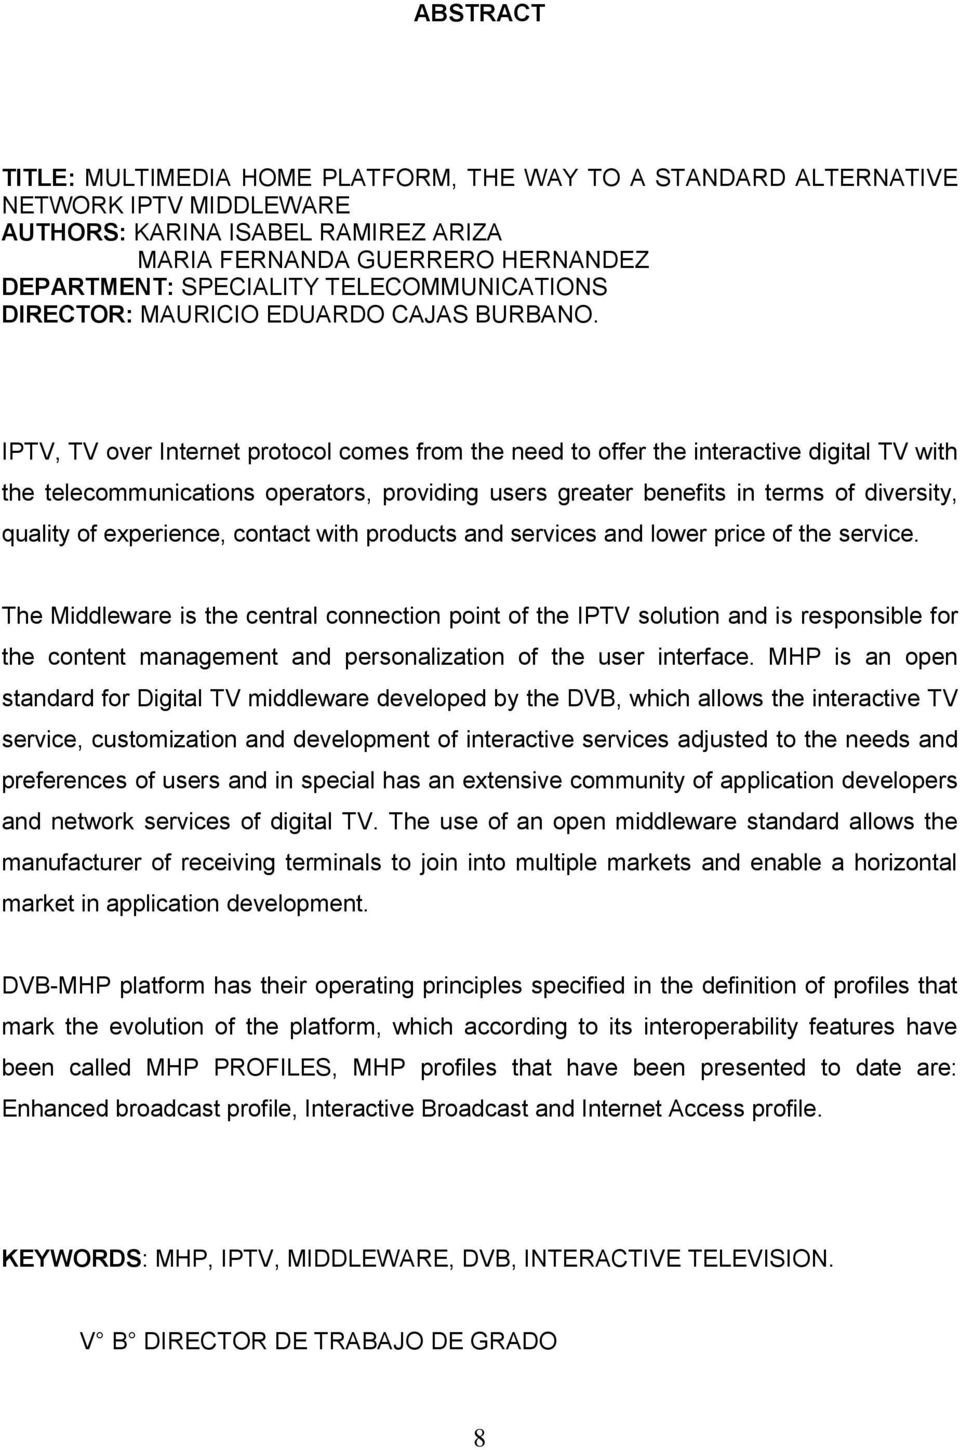 IPTV, TV over Internet protocol comes from the need to offer the interactive digital TV with the telecommunications operators, providing users greater benefits in terms of diversity, quality of